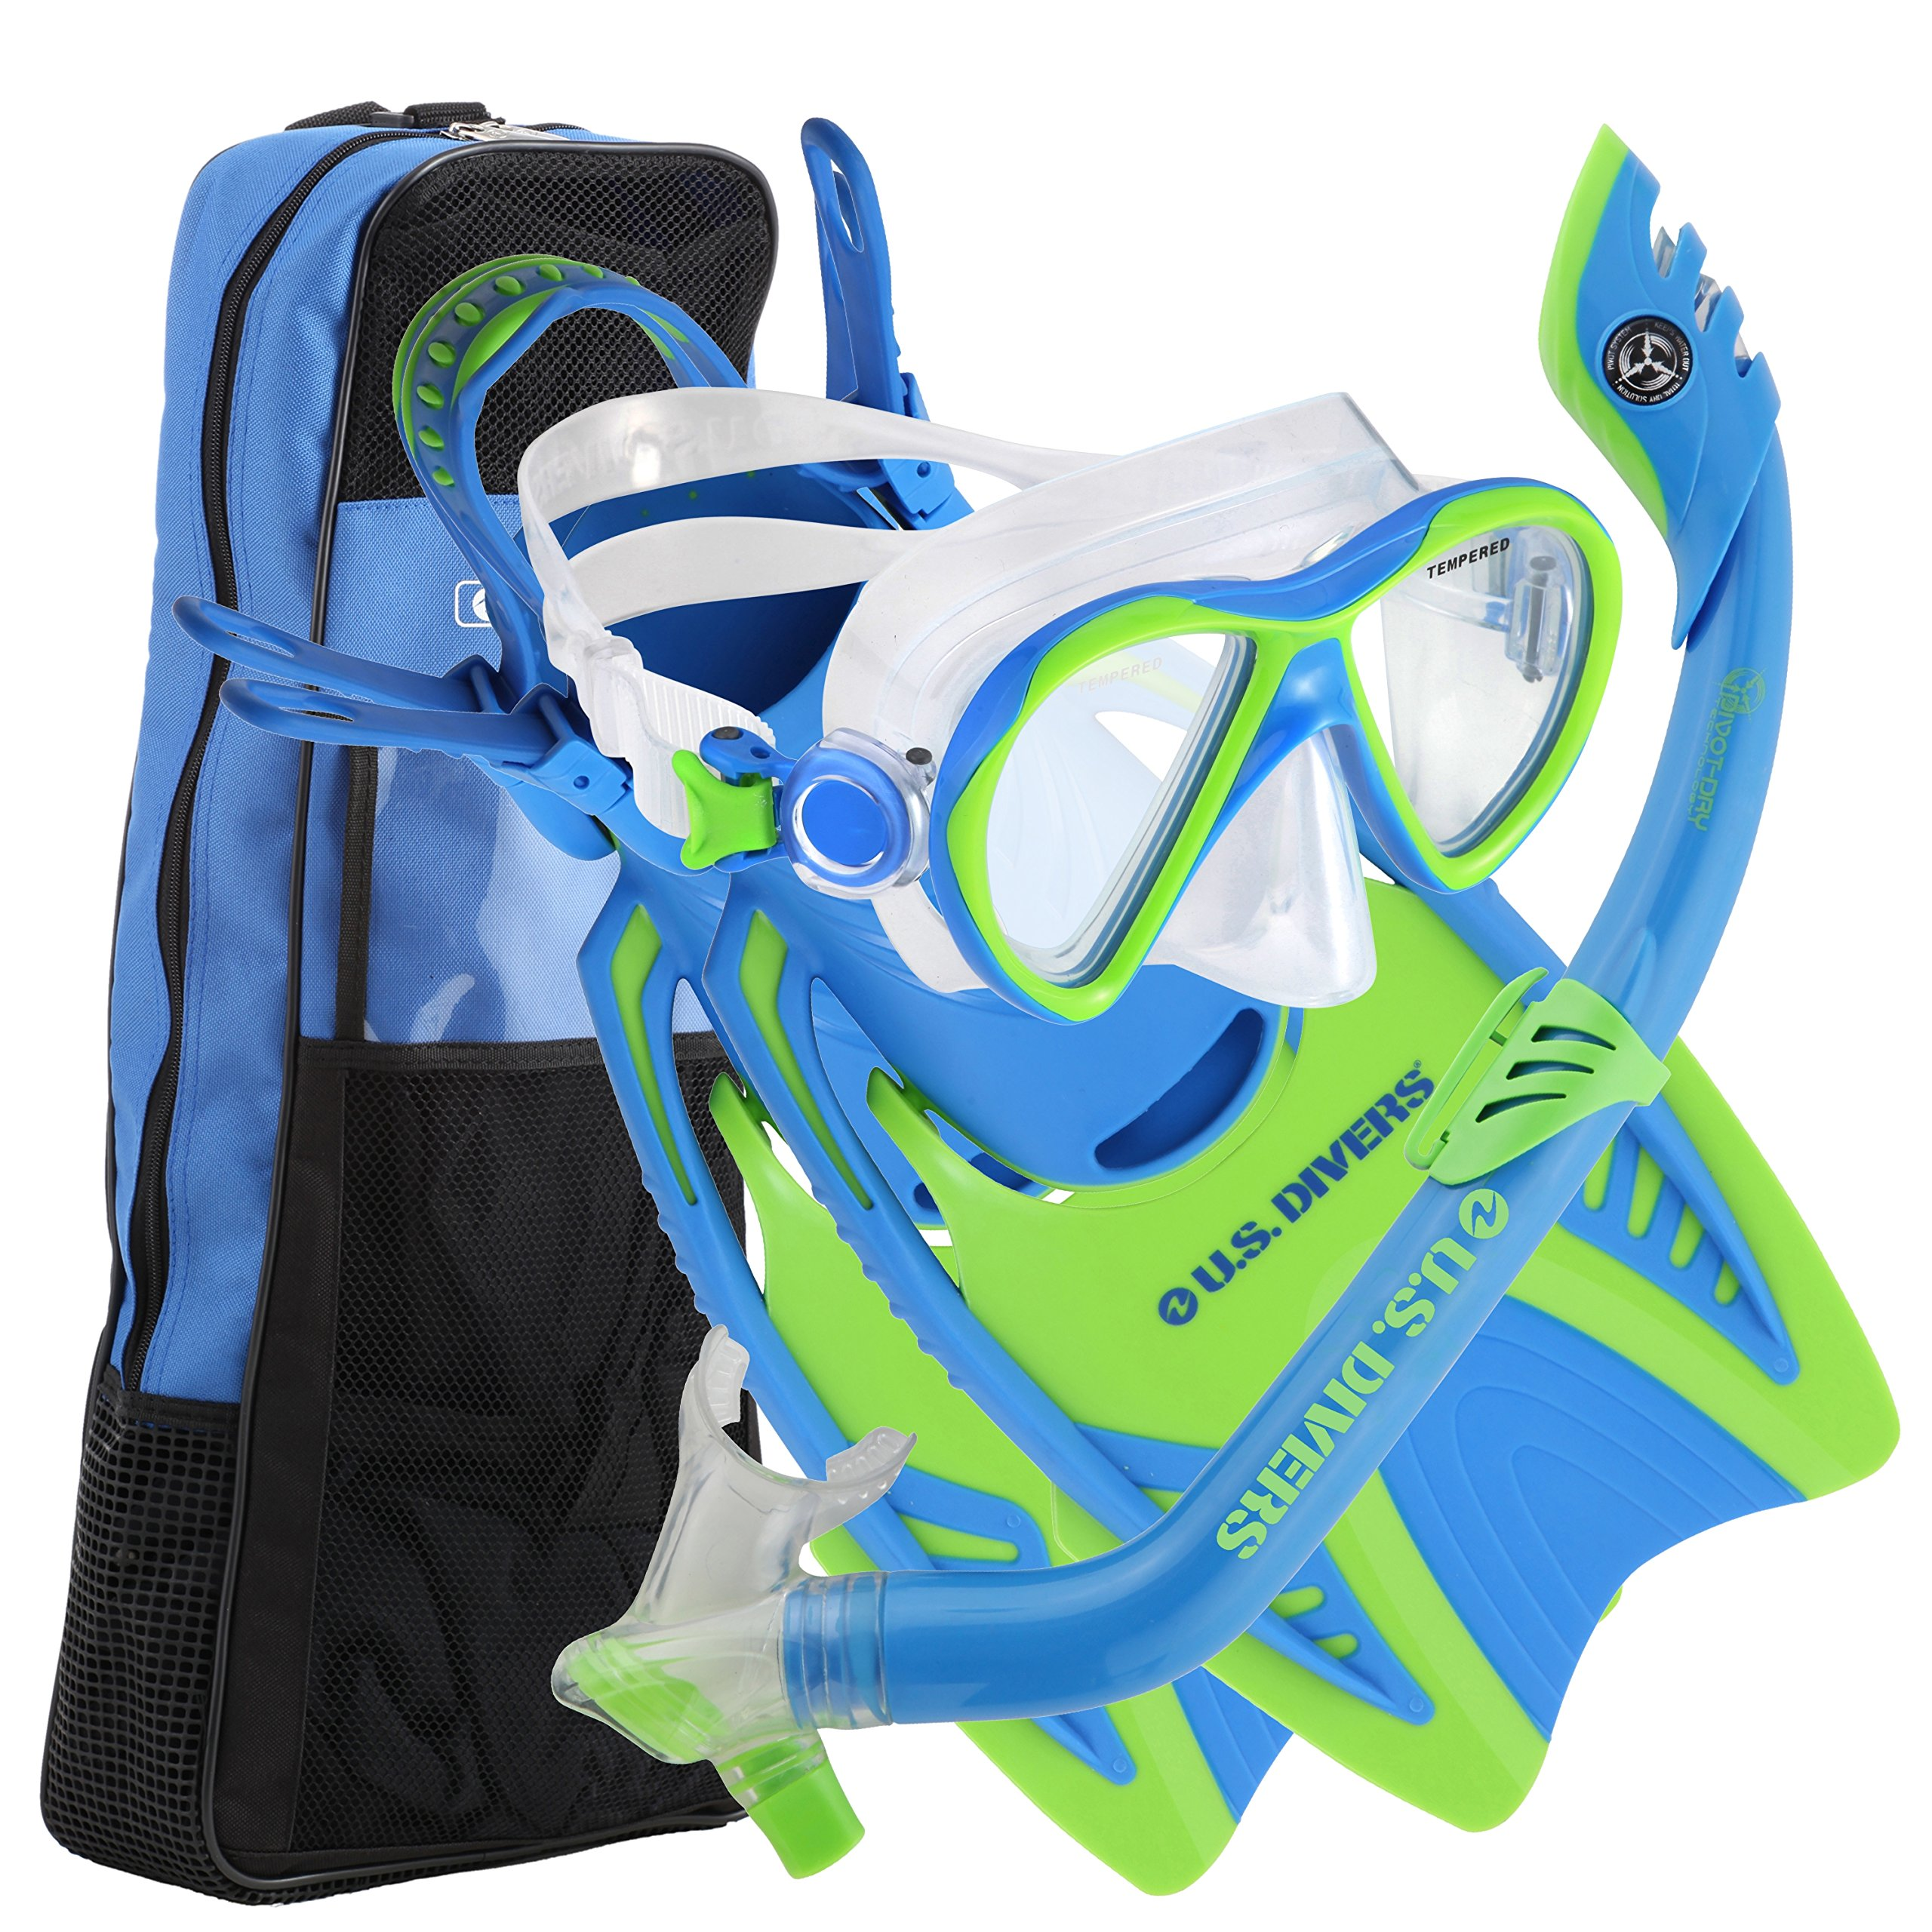 U.S. Divers Youth Flare Jr Silicone Snorkeling Set Fun Blue Small 1-3 by U.S. Divers